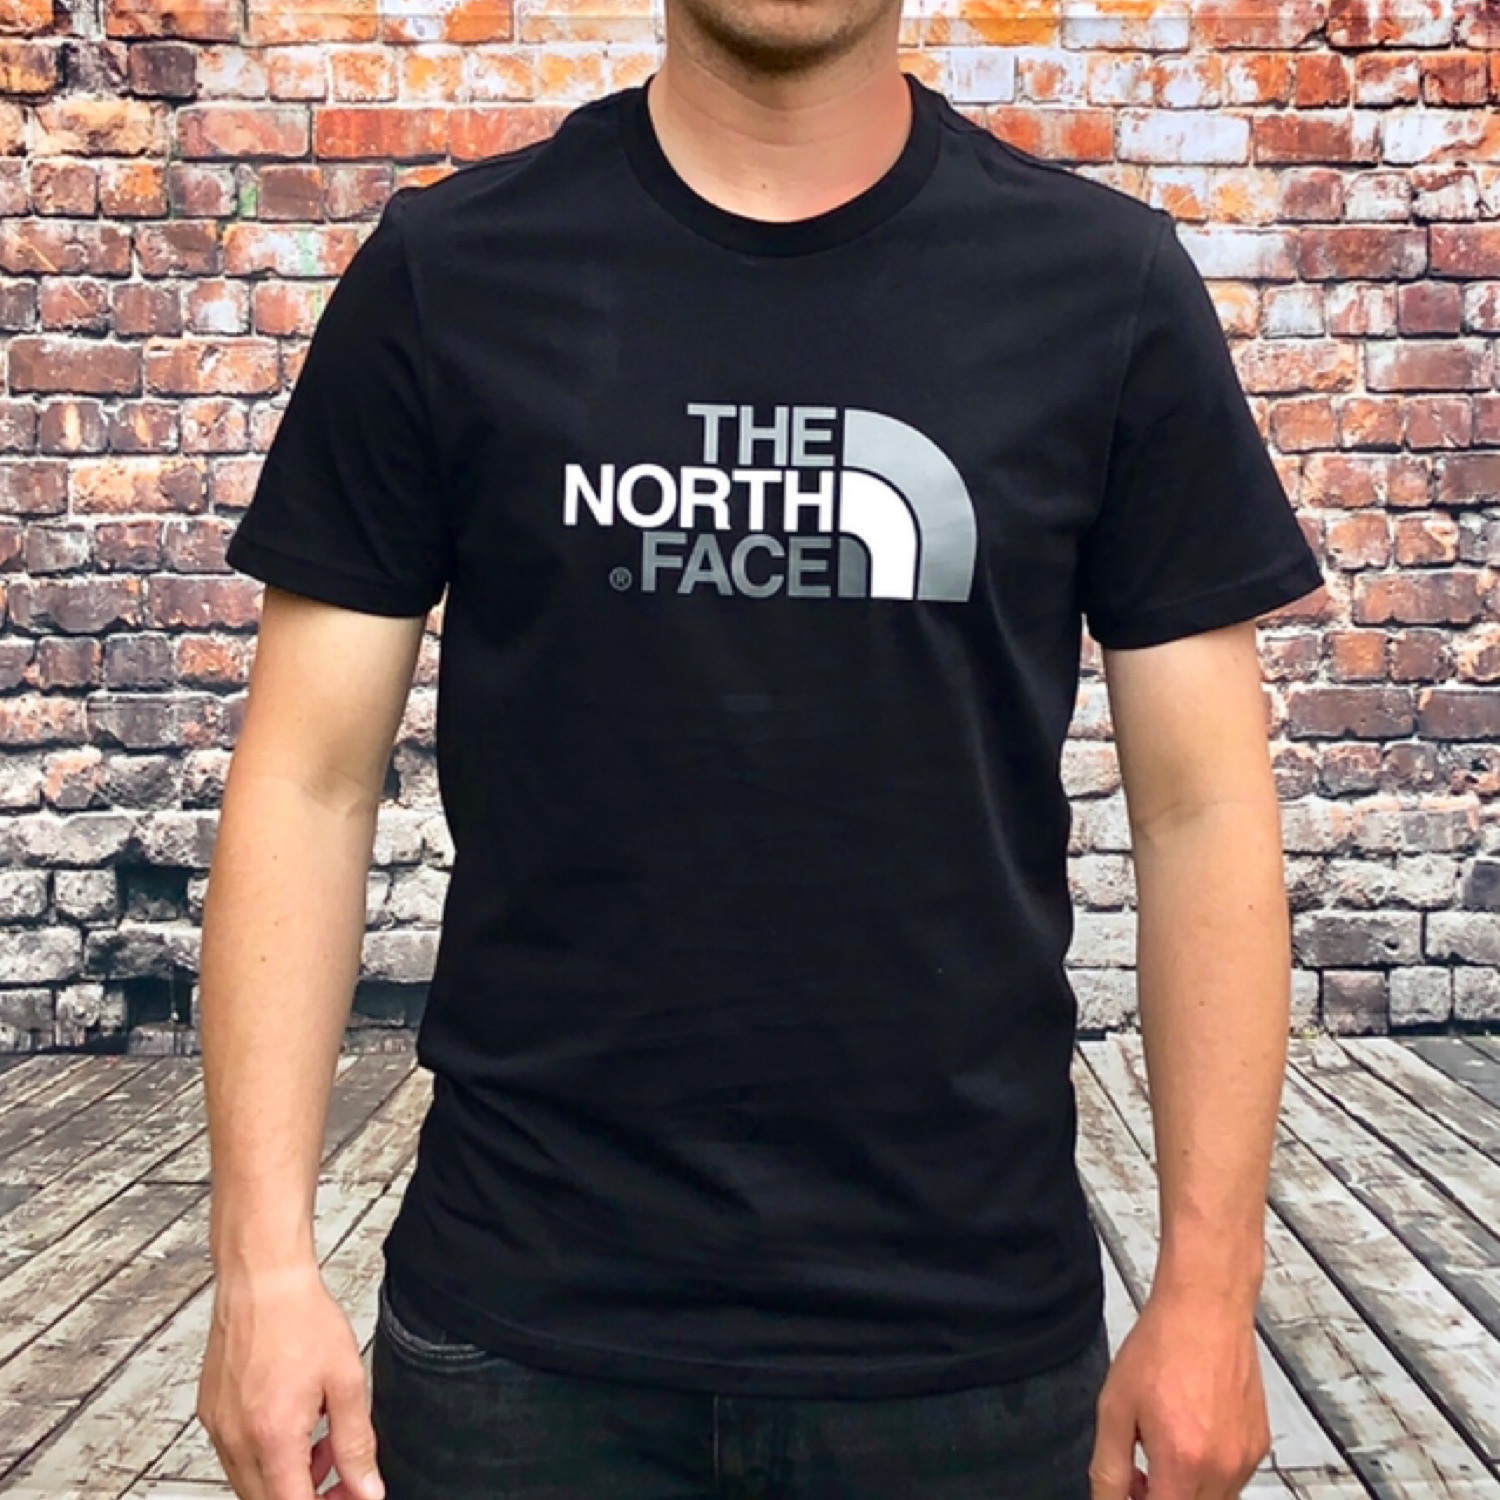 Brand New Black The North Face Tee Shirt